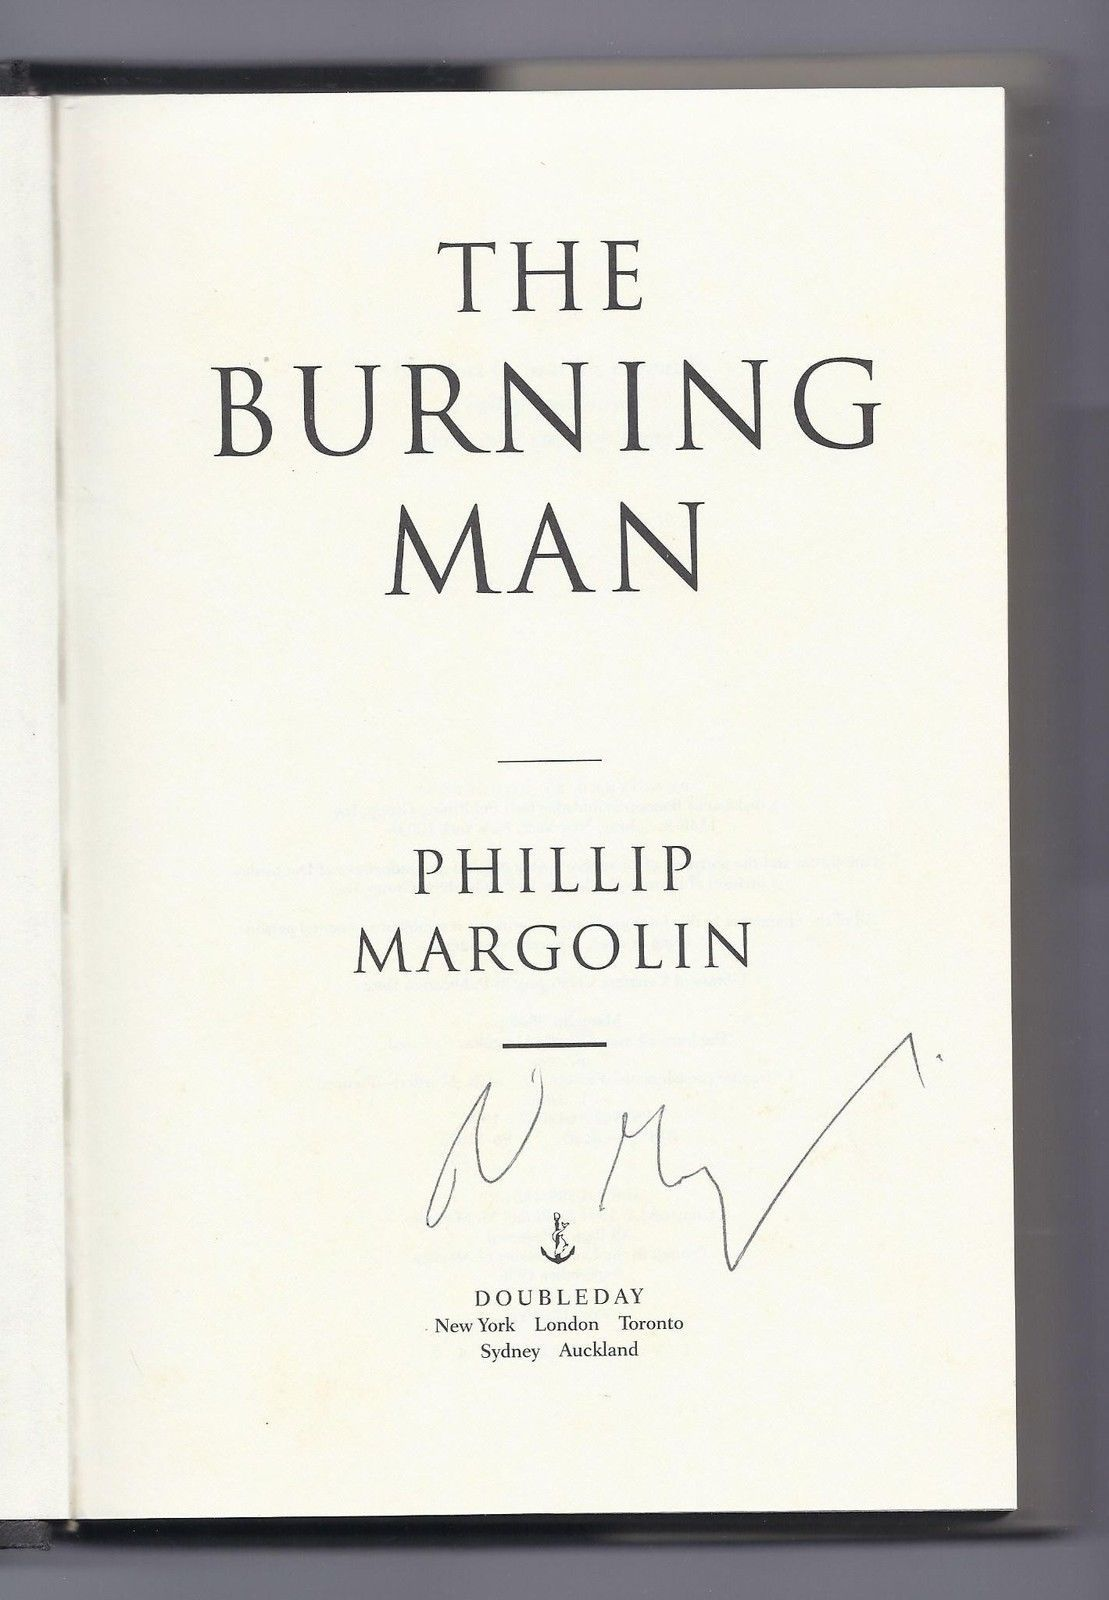 an analysis of phillip margolins book the burning man Phillip margolin was a practicing criminal defense attorney for twenty-five years, has tried many high-profile cases and has argued before the us supreme court his previous novels are heartstone, the last innocent man, gone, but not forgotten, after dark, and the burning man.